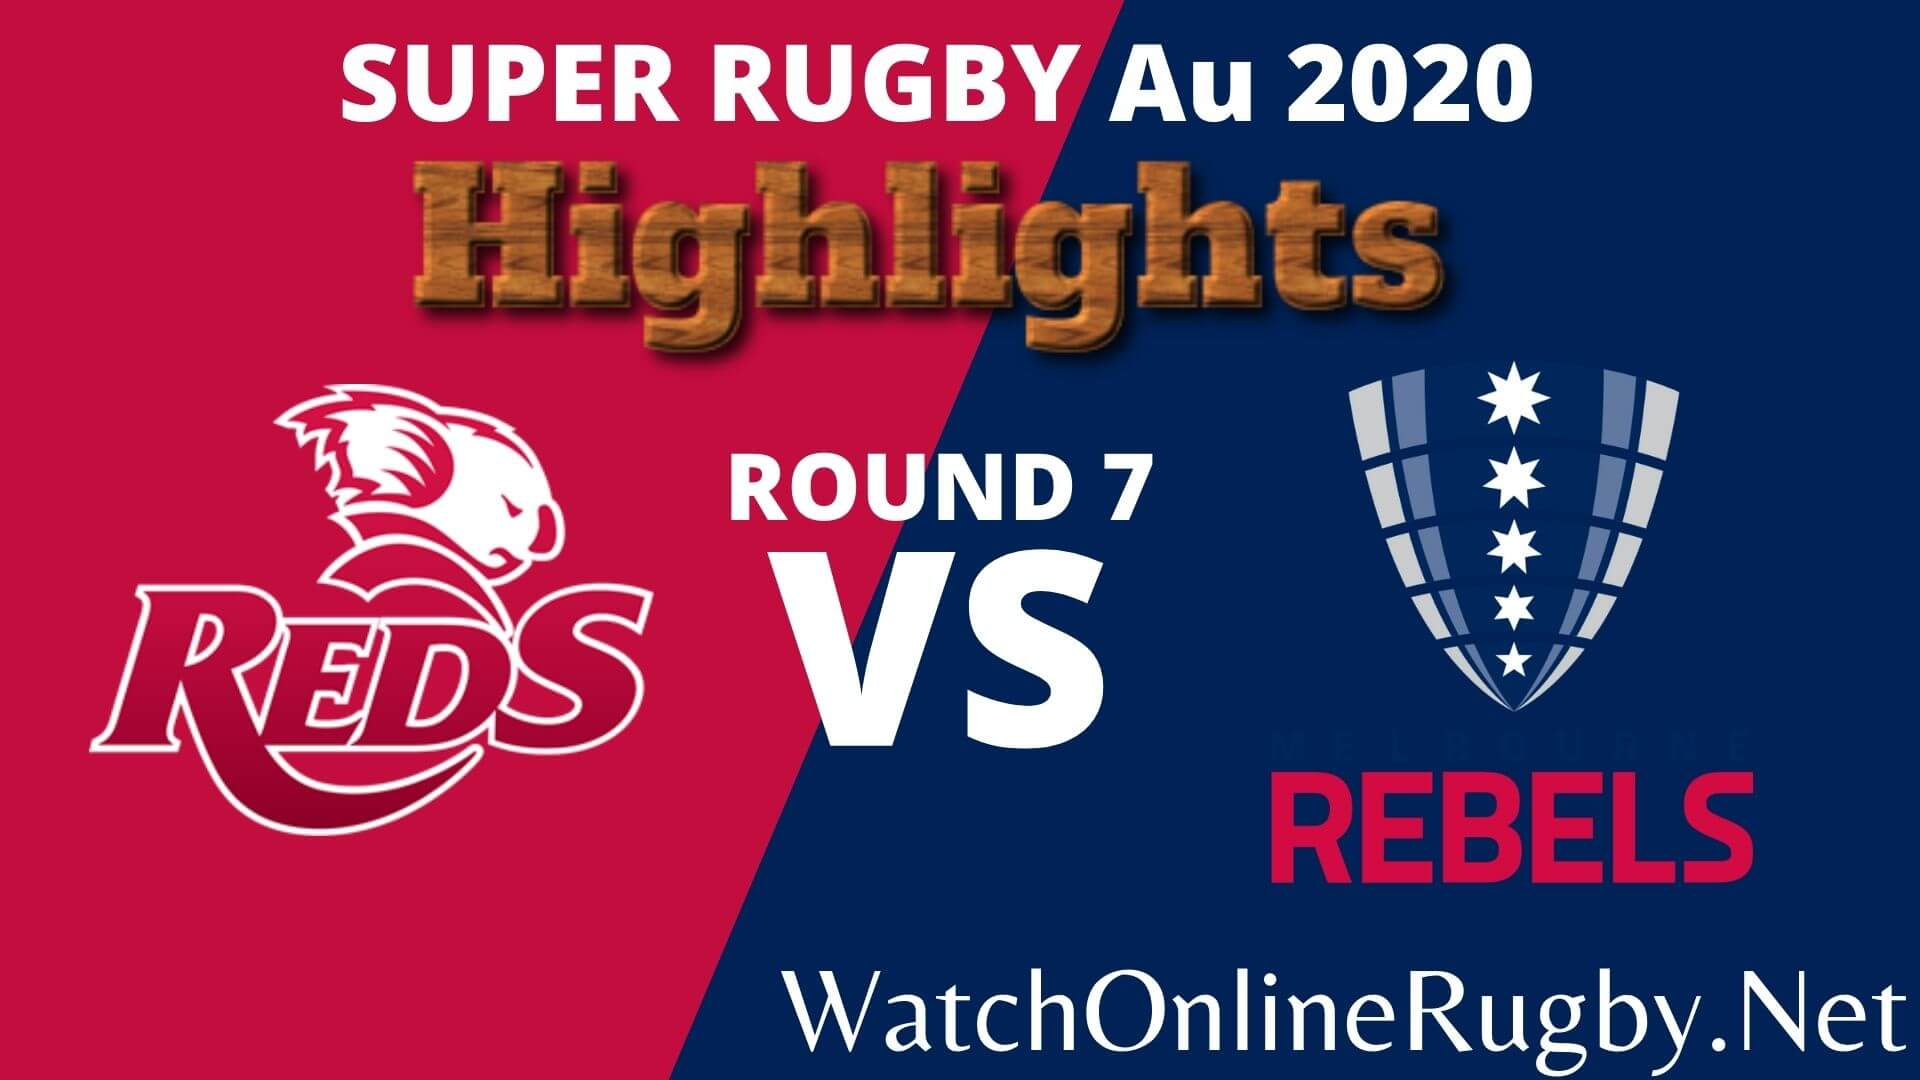 Reds Vs Melbourne Rebels Highlights 2020 Rd 7 Super Rugby Au